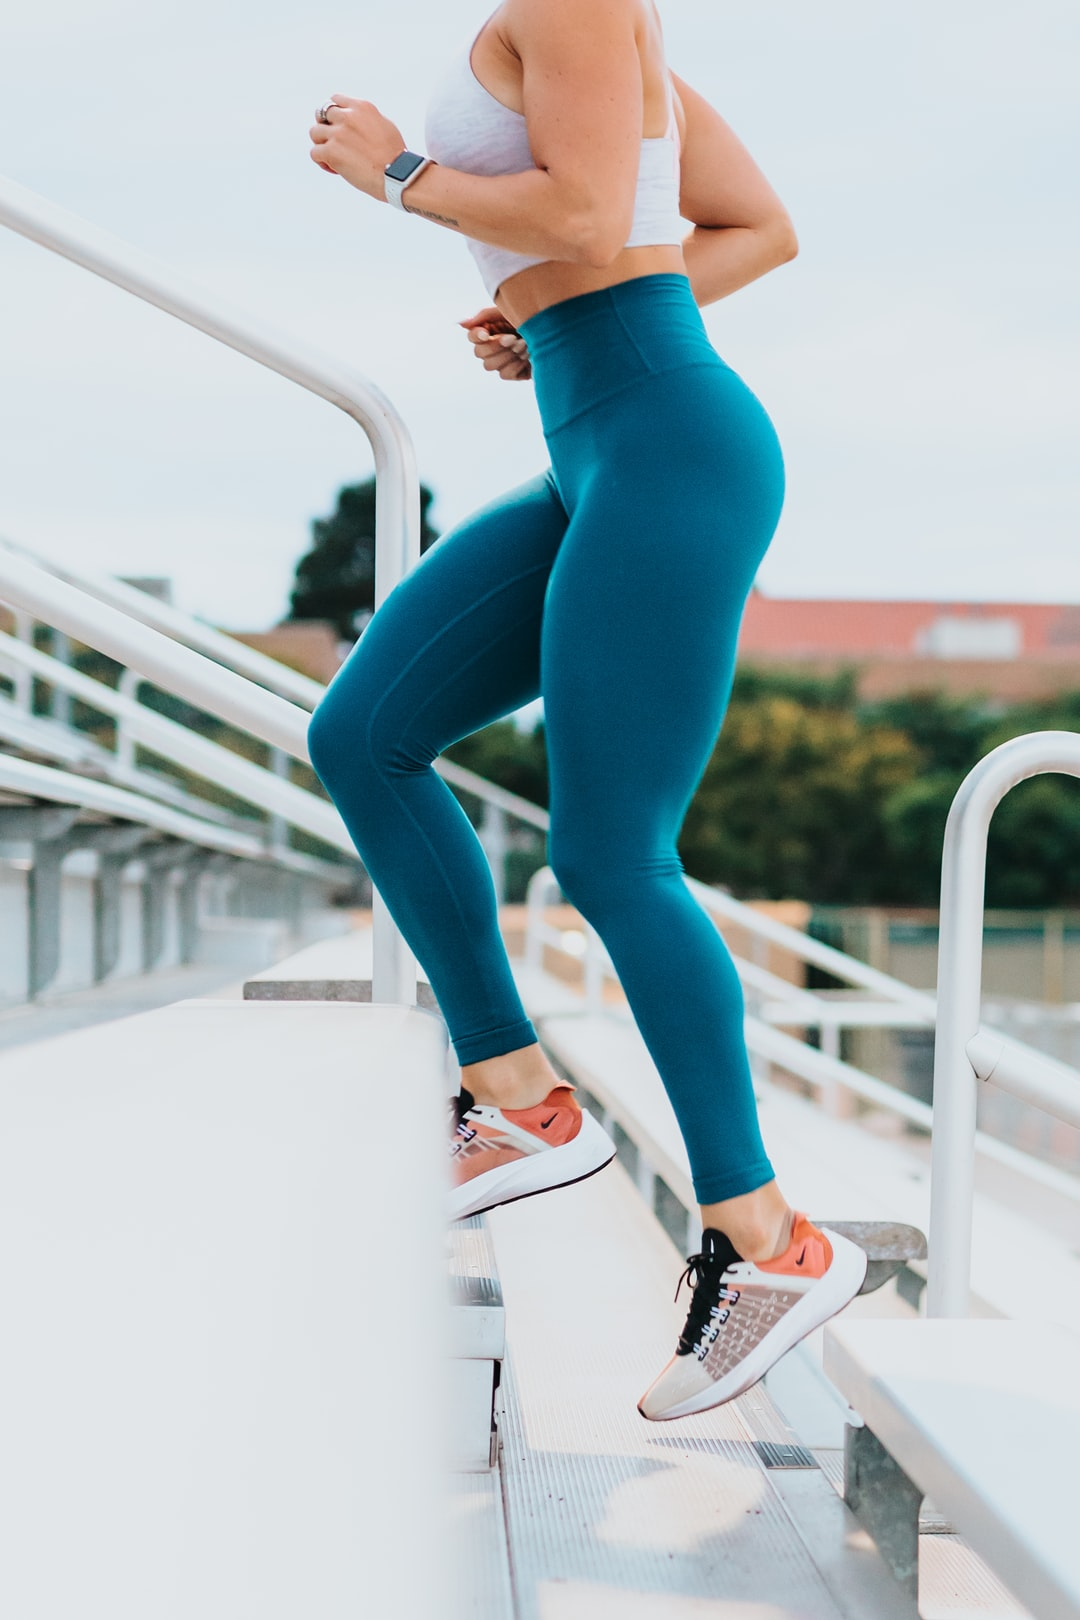 Everything You Need To Know About Hip Augmentation